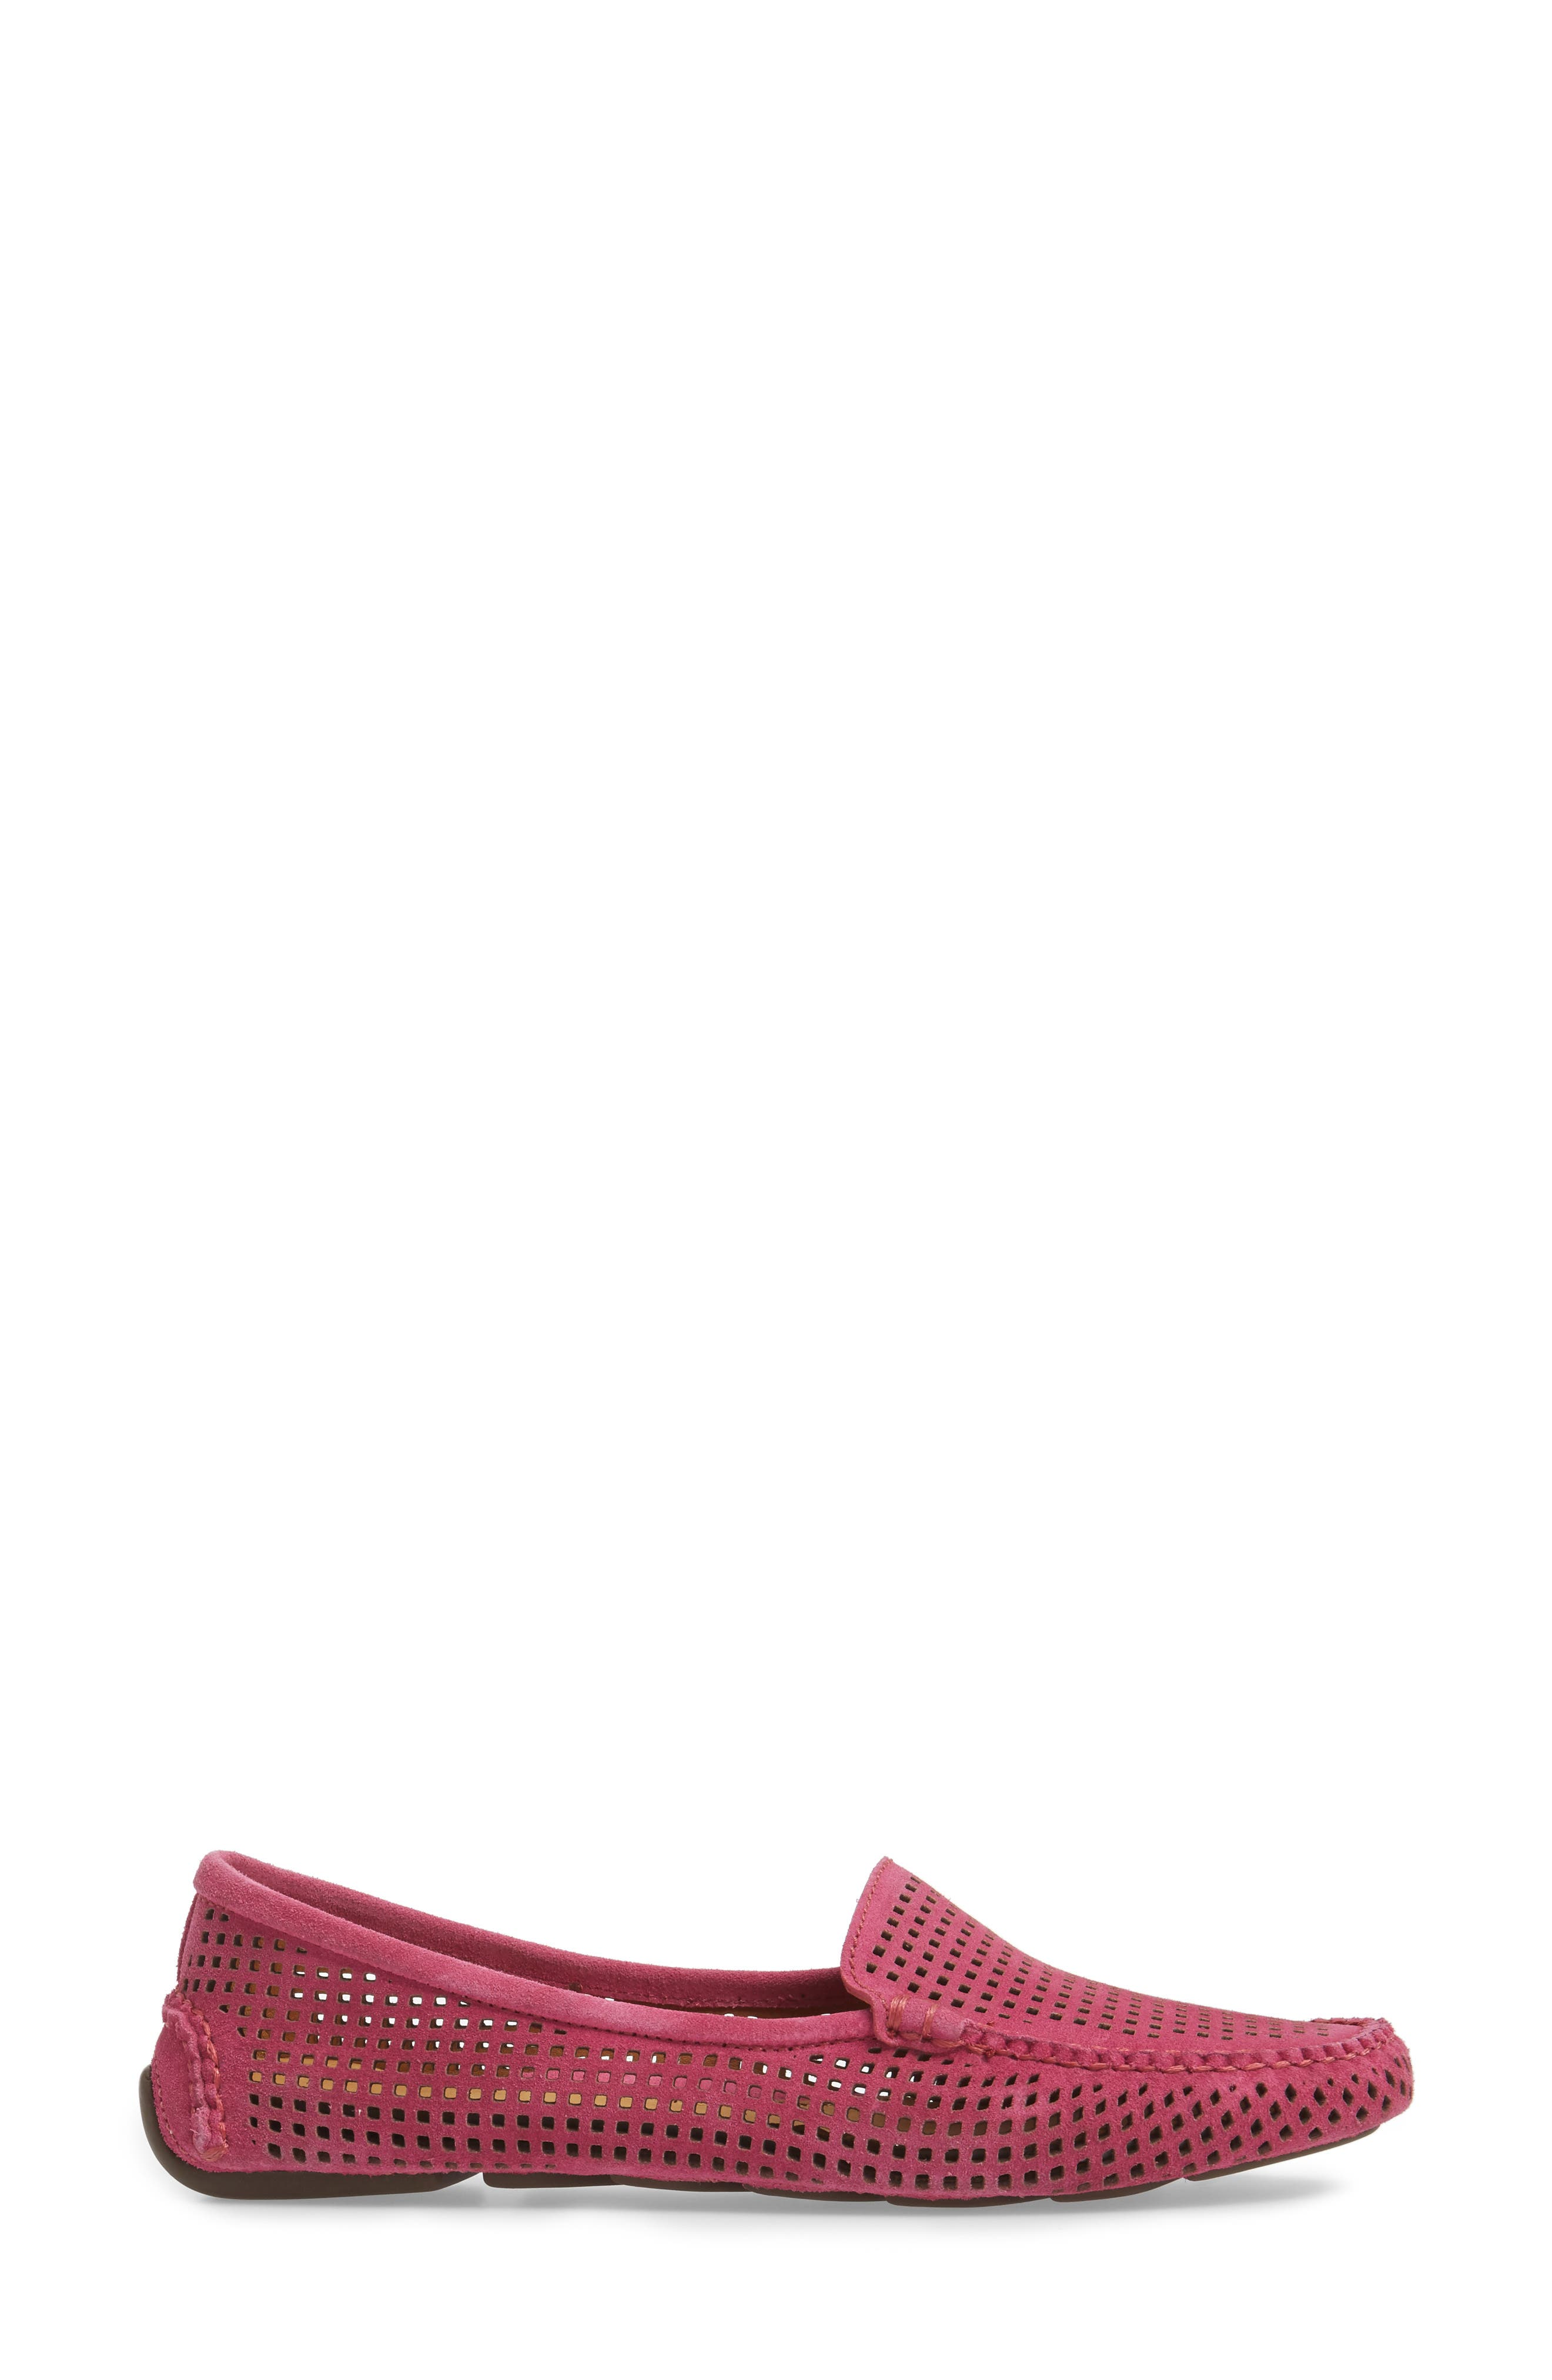 'Barrie' Flat,                             Alternate thumbnail 3, color,                             Hot Pink Suede